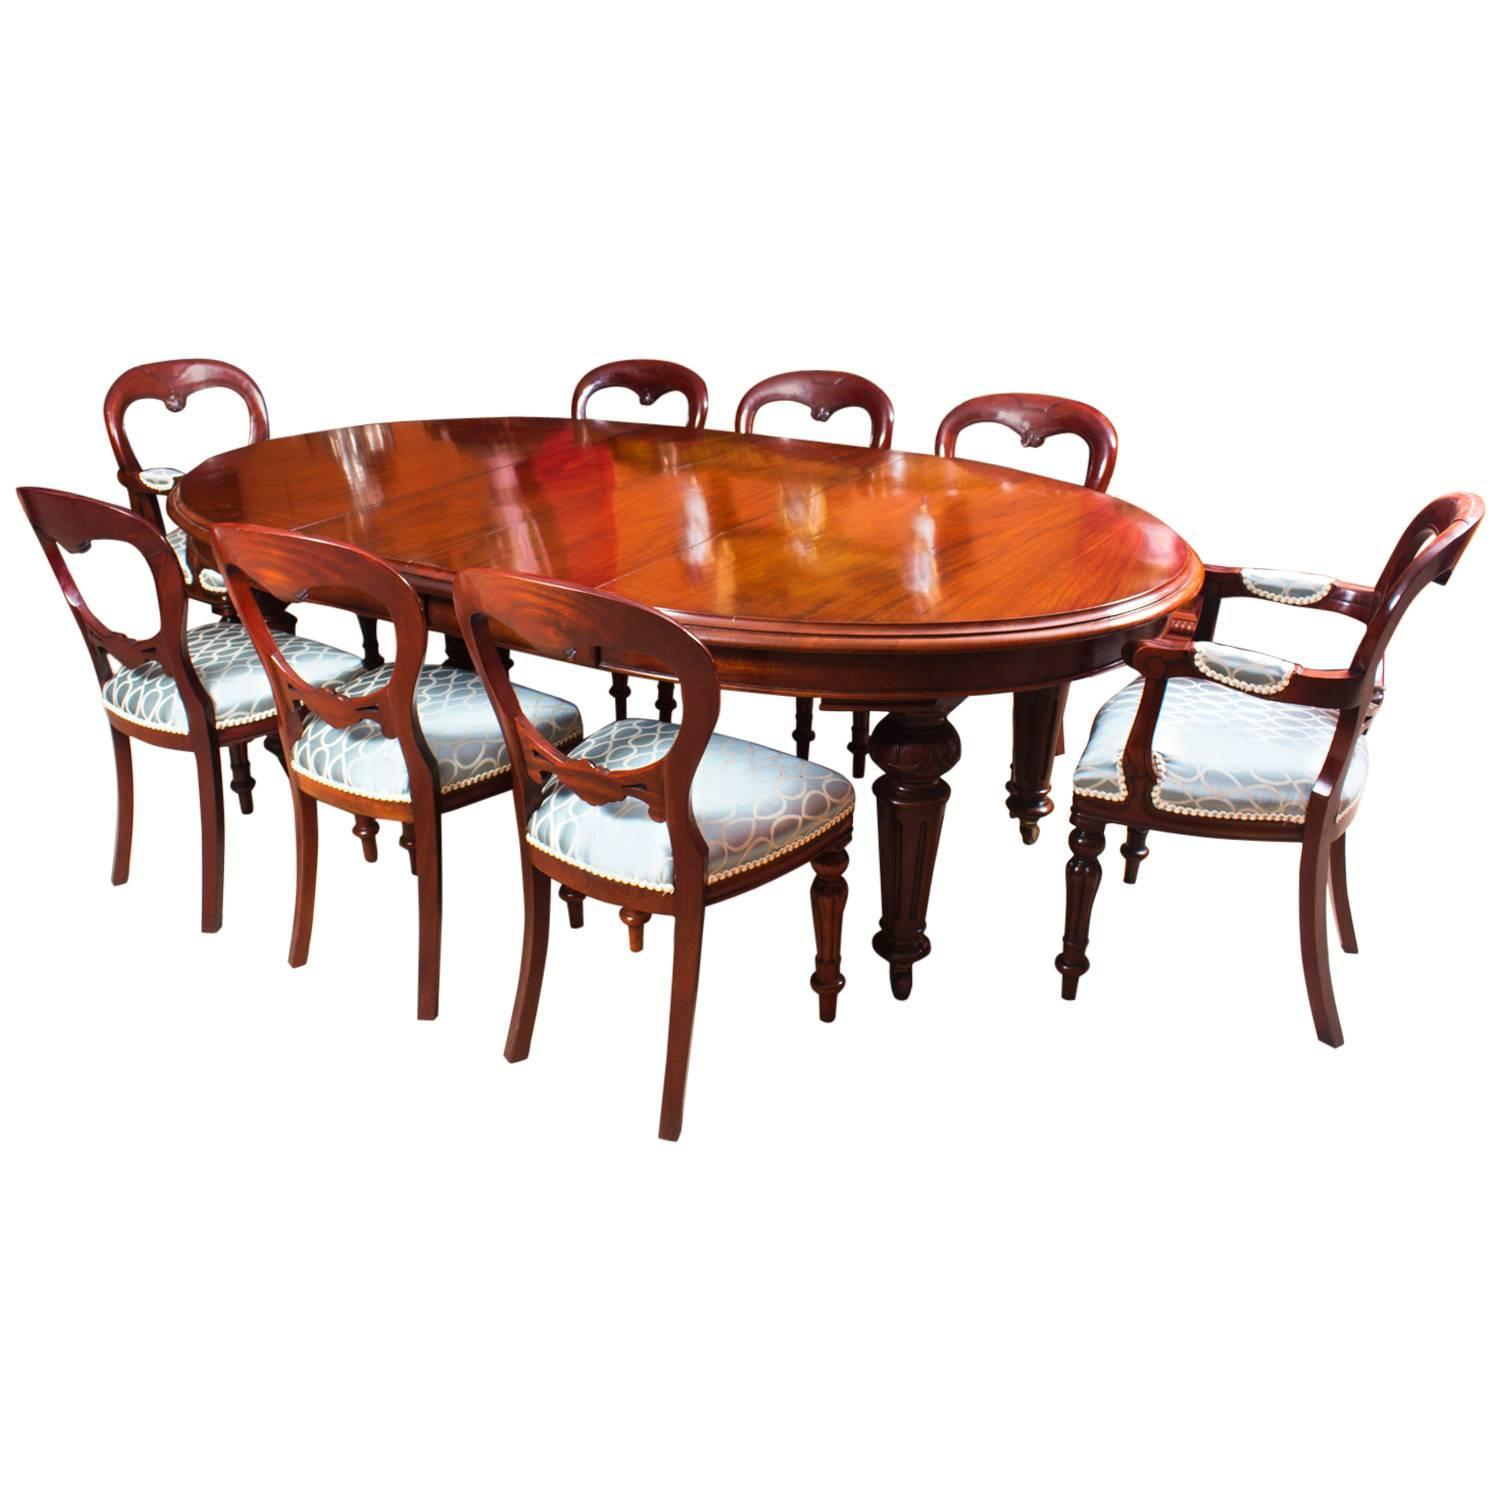 Antique victorian oval dining table 8 chairs for Dining room table and 8 chairs